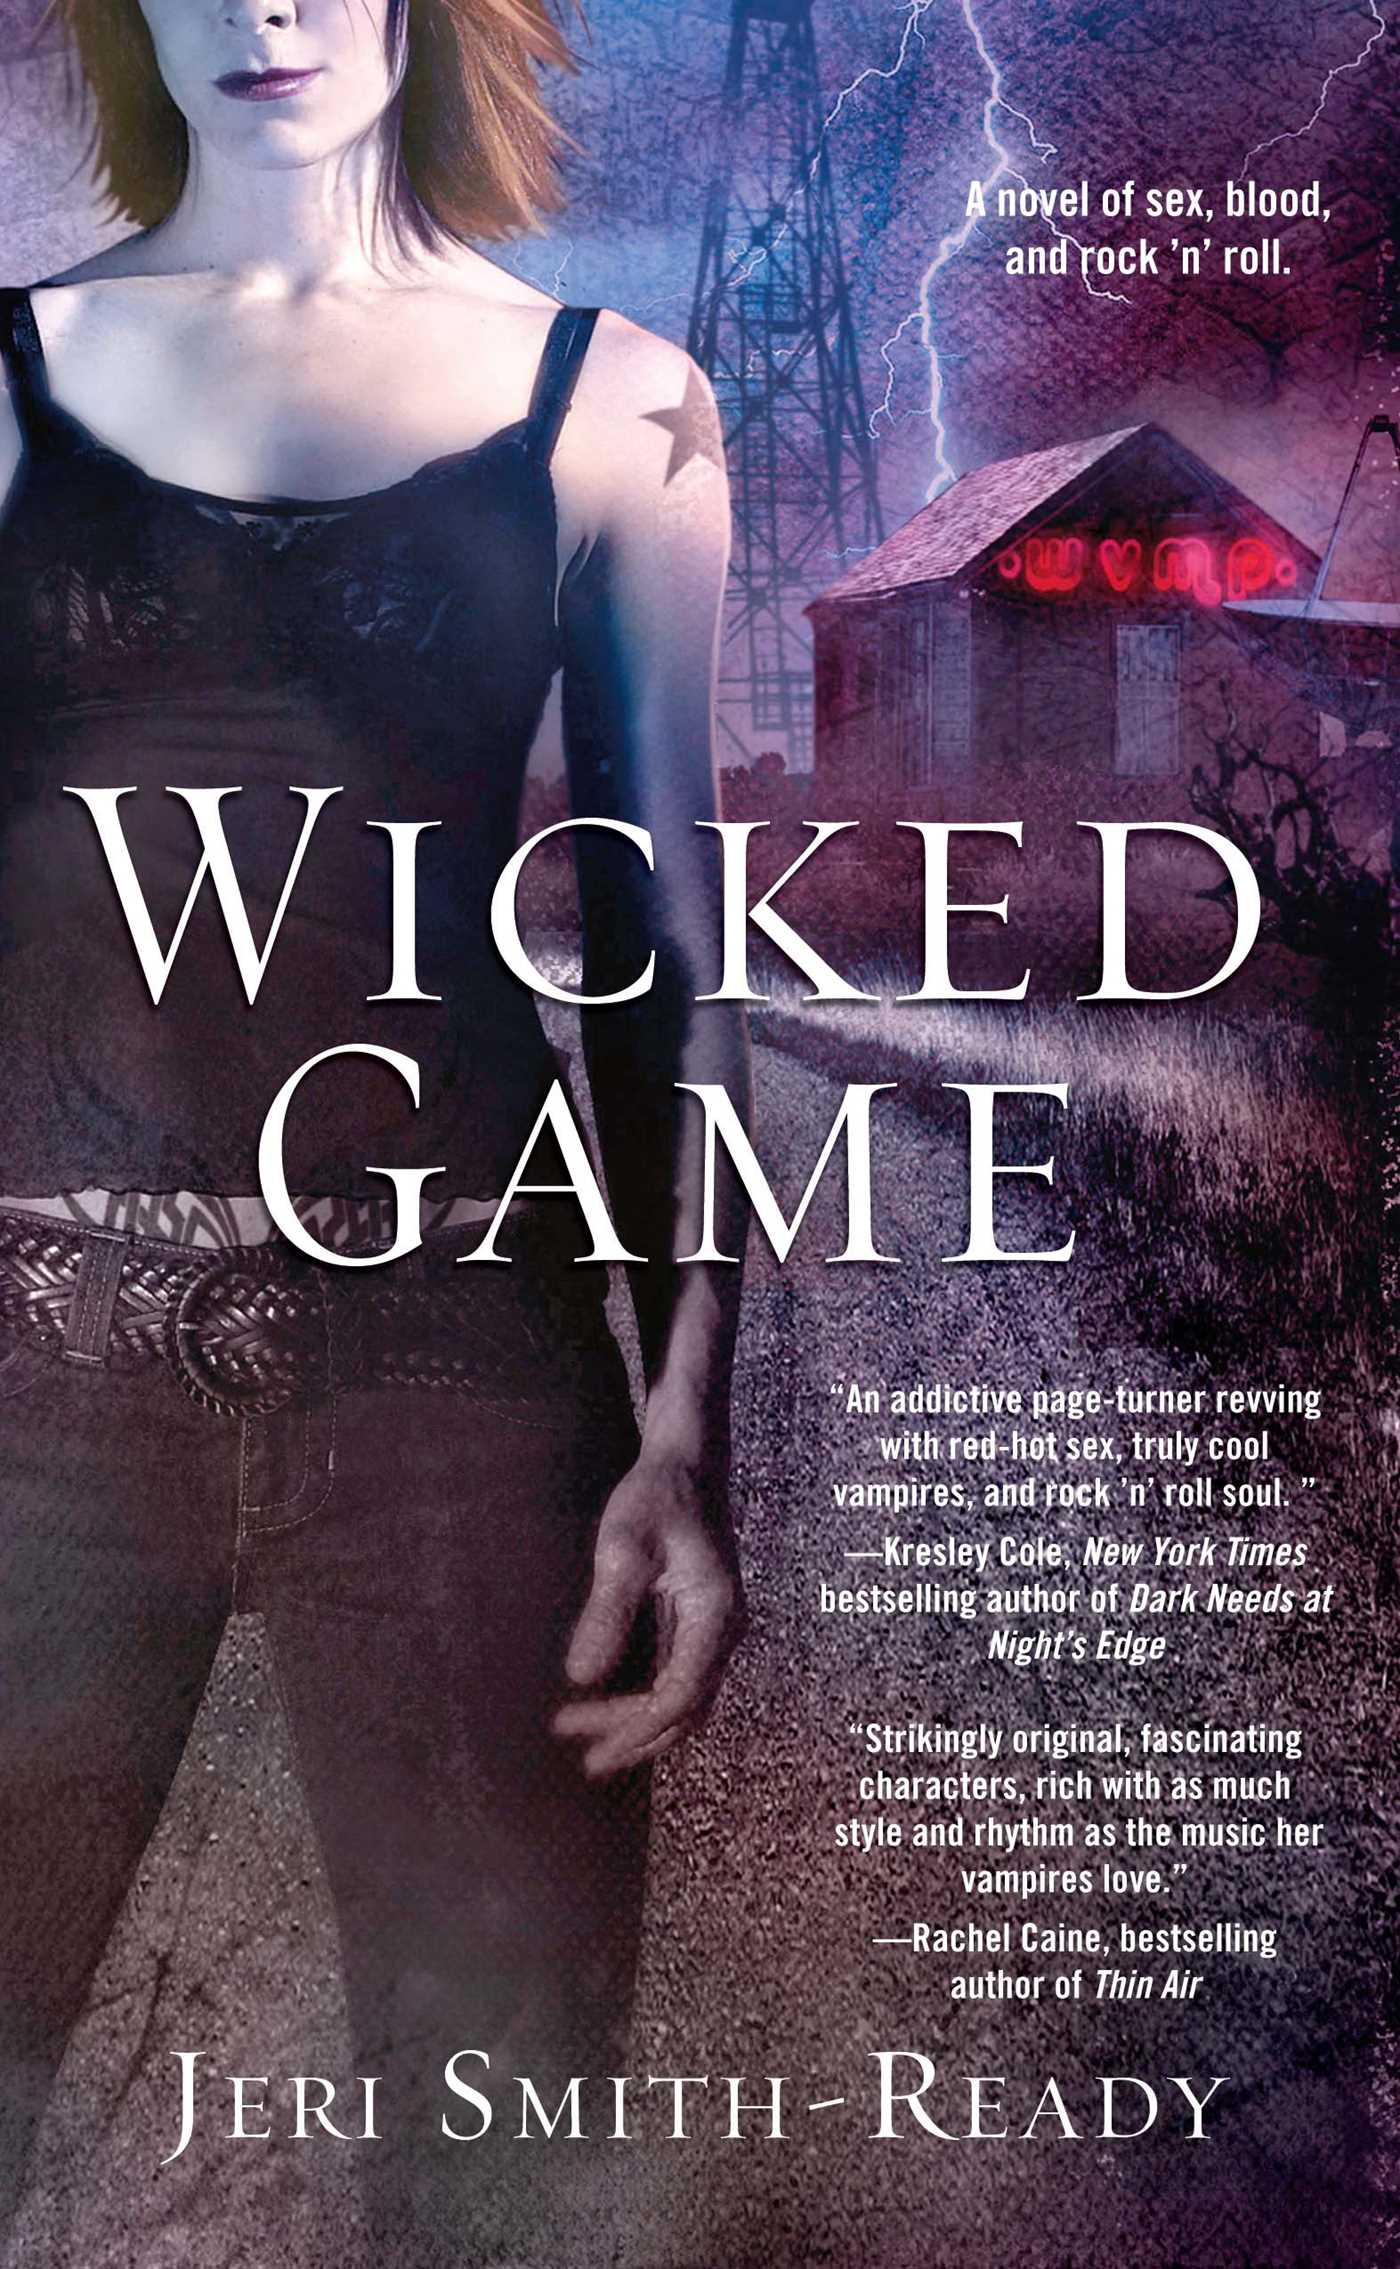 Wicked-game-9781416566106_hr